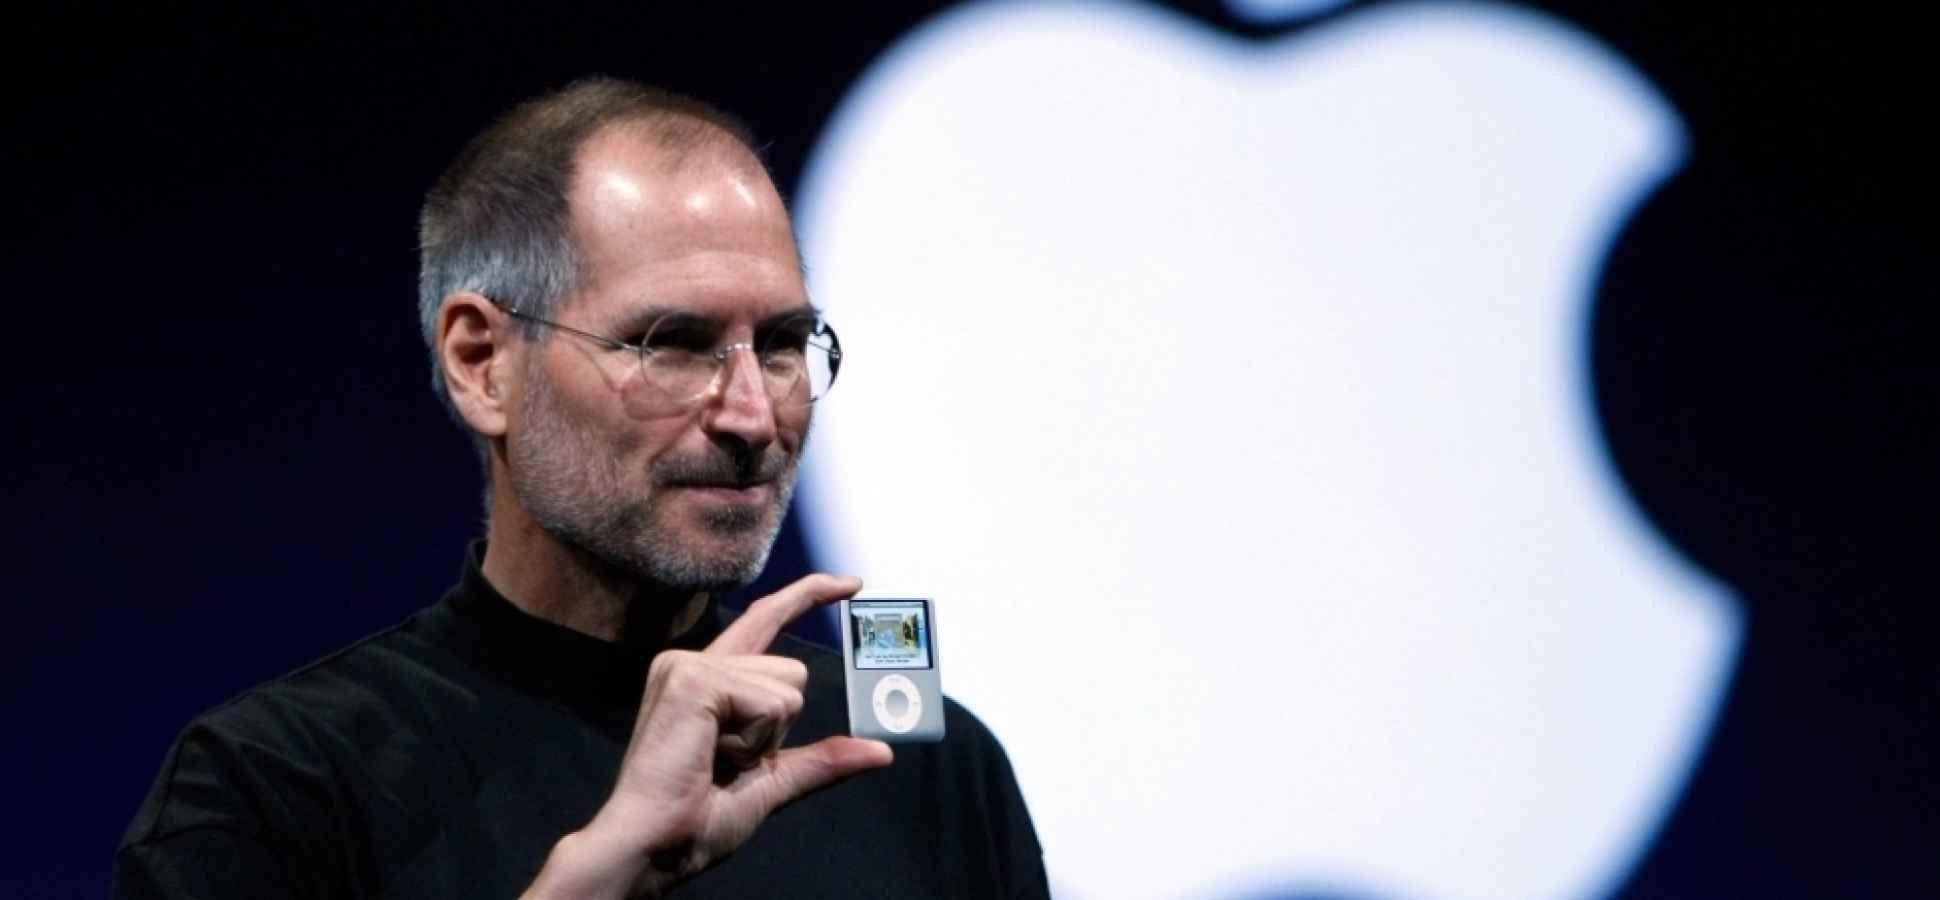 10 Songs Steve Jobs Used to Train His Brain